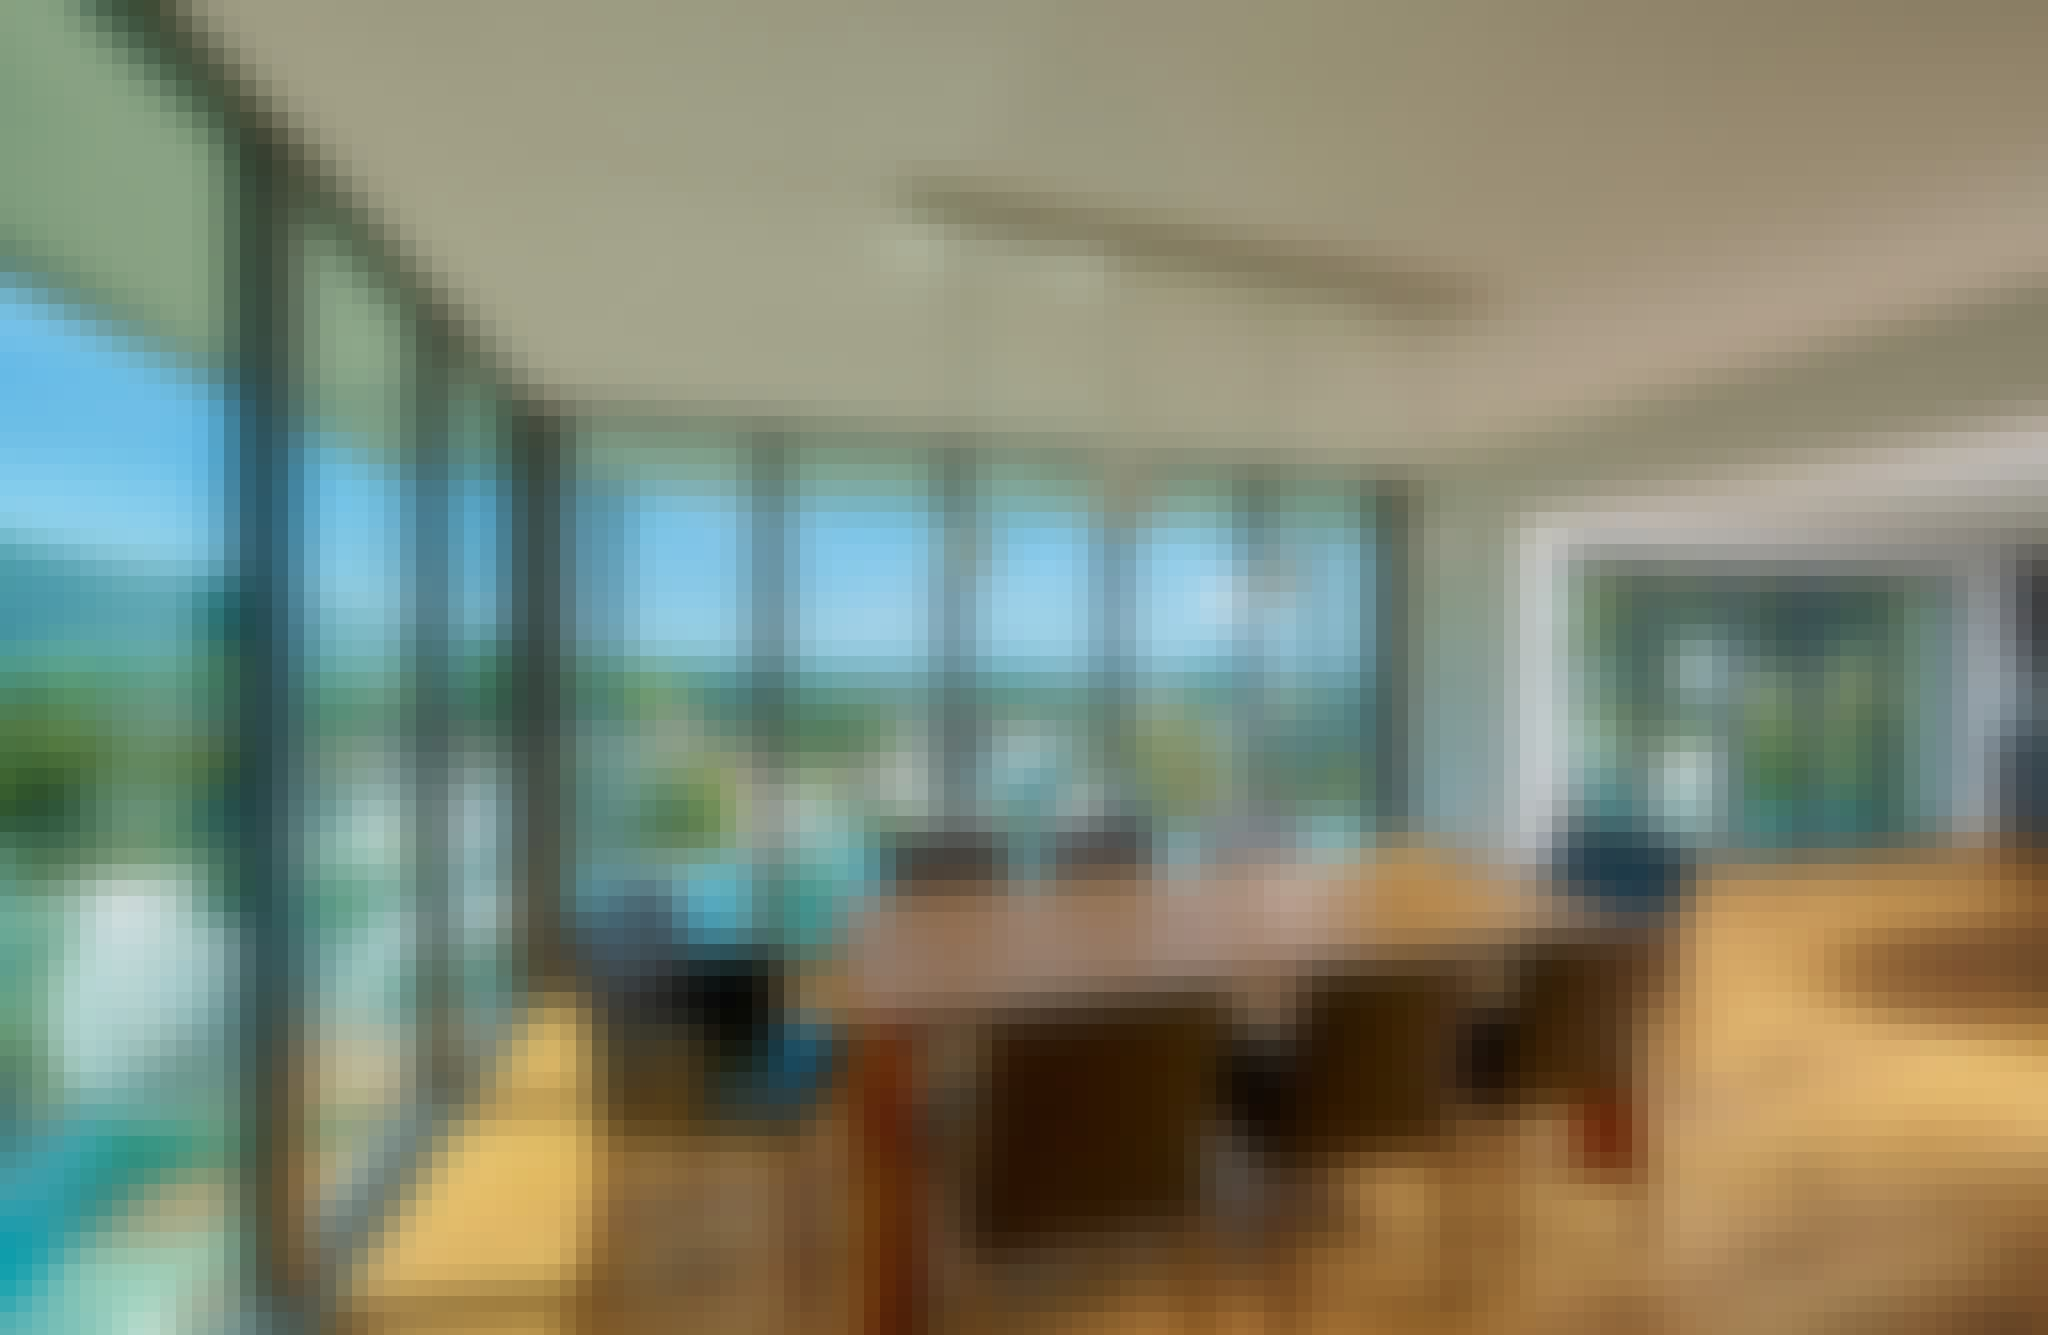 Nanawall NW Aluminum 840 with the slimmest frame providing unobstructed views in comtemporary home